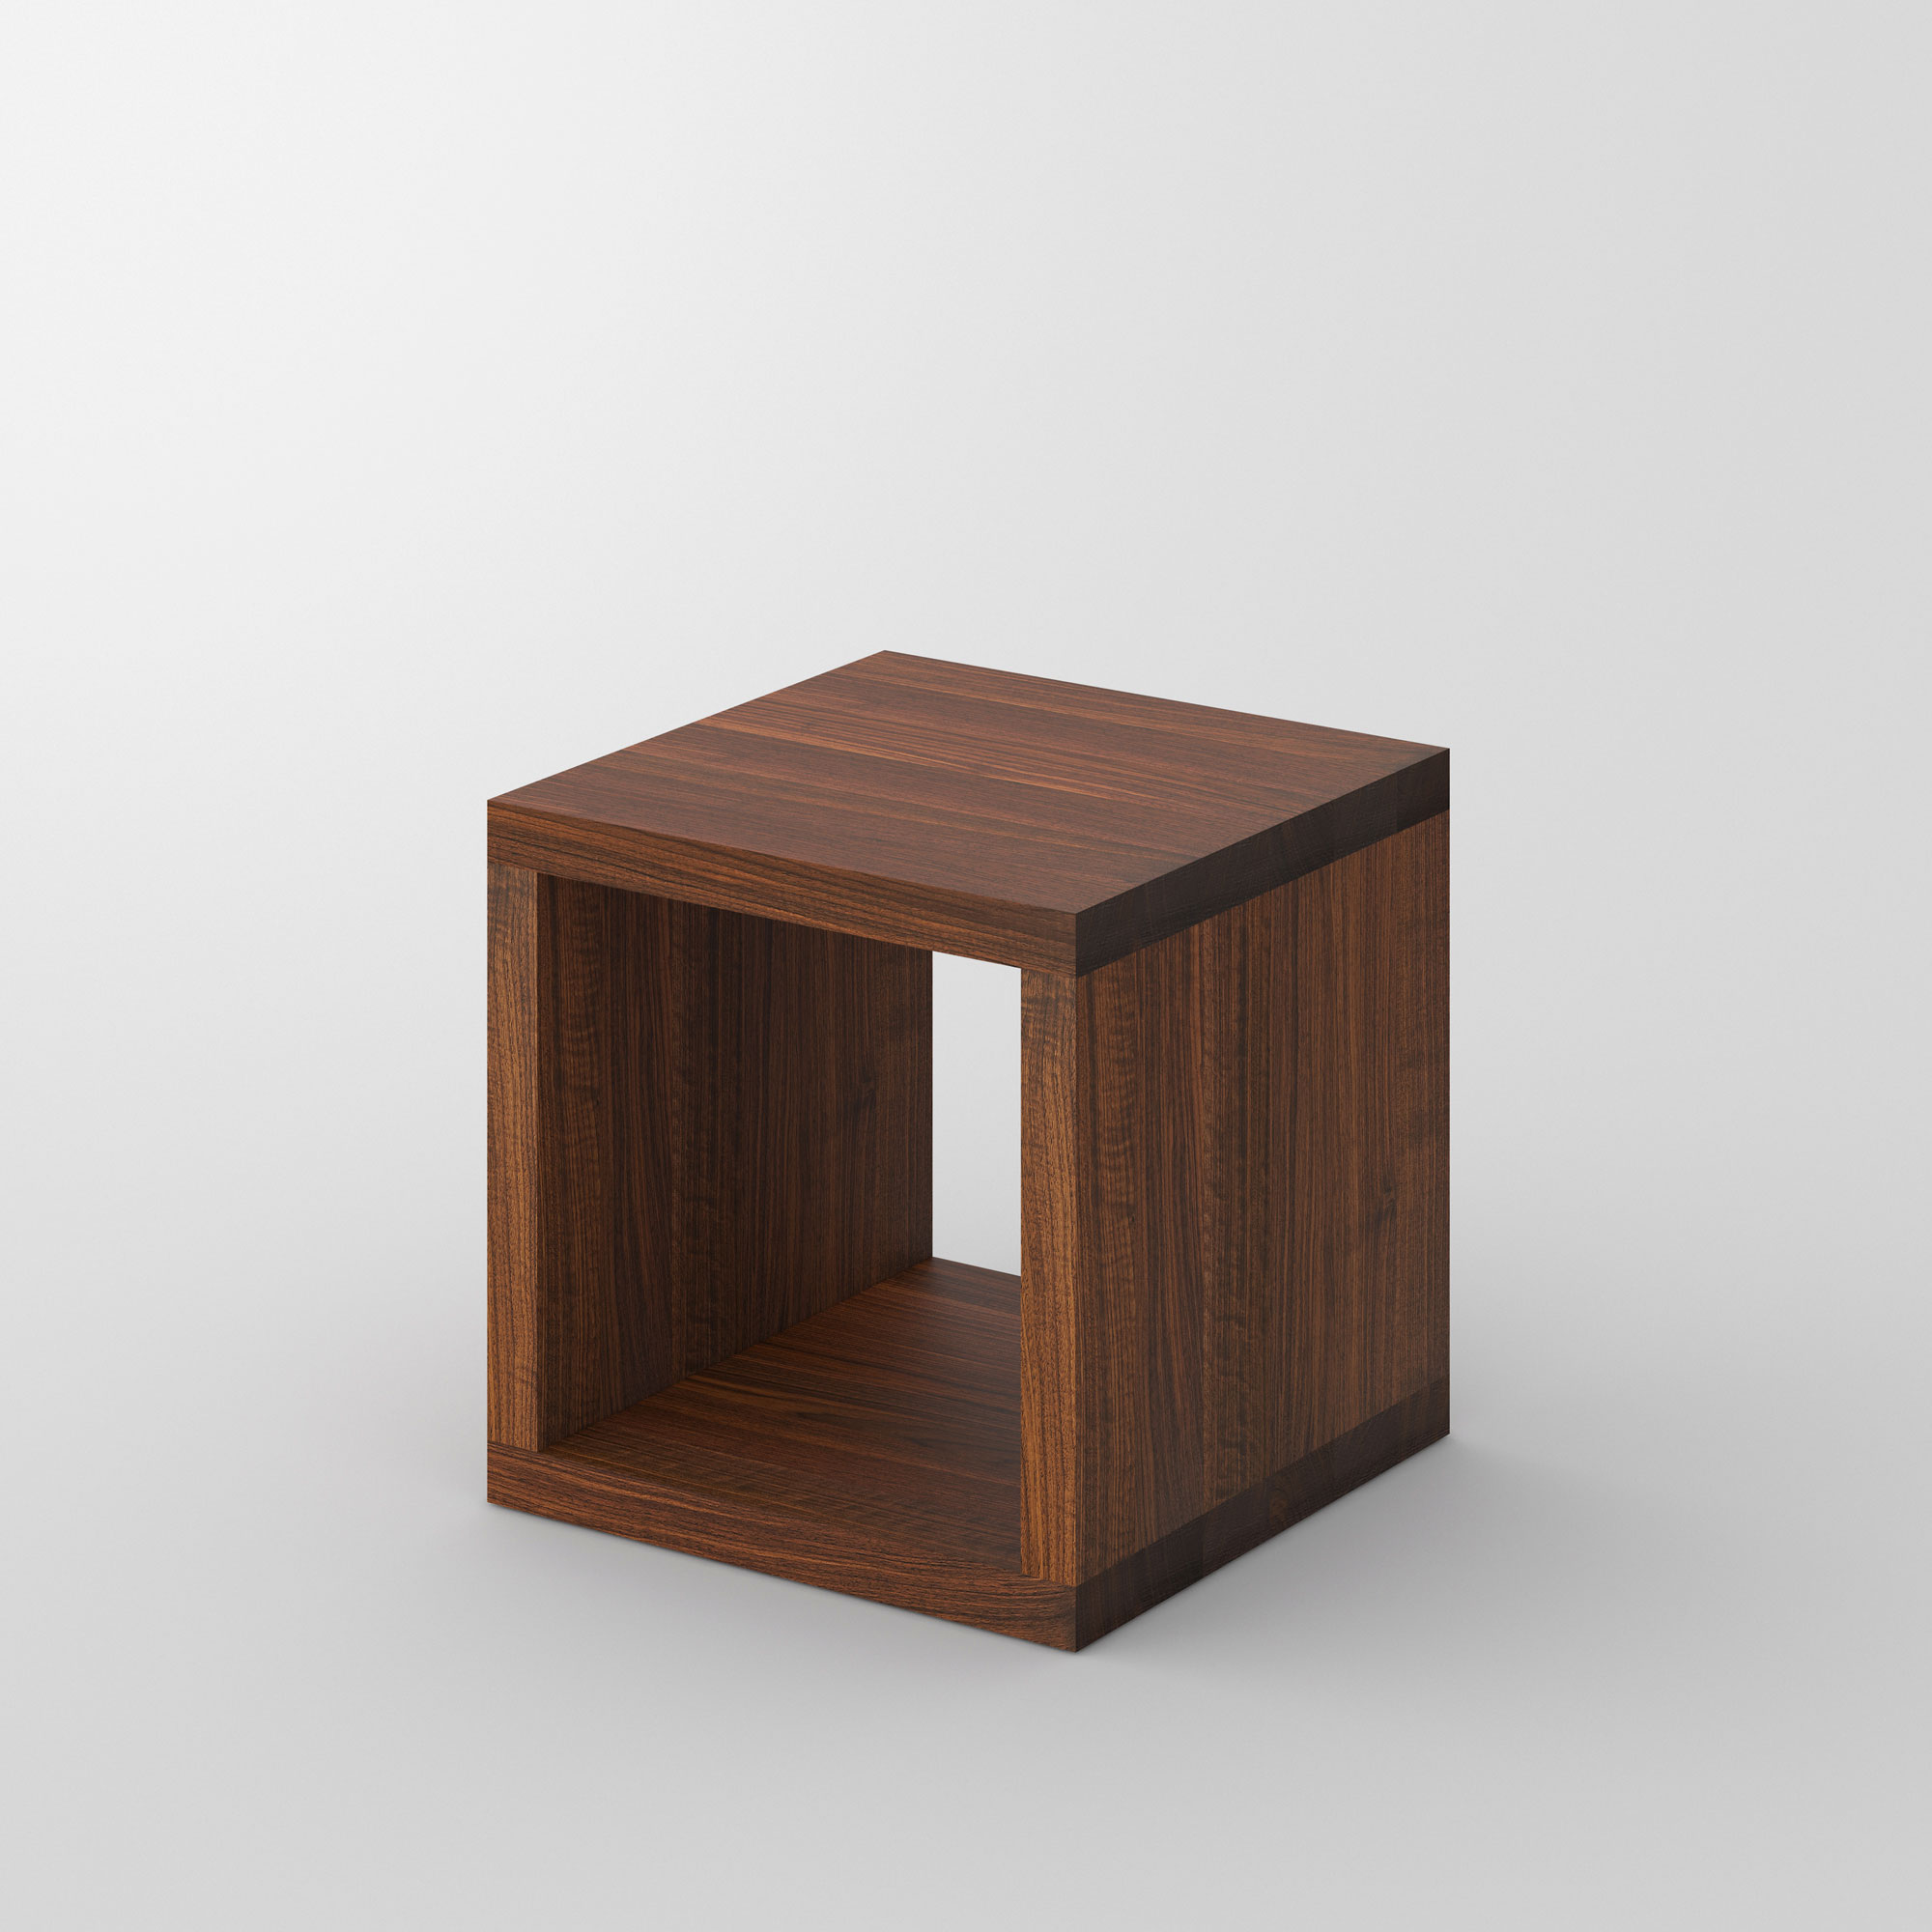 Multifunctional Coffee Table MENA B 4 cam1 custom made in solid wood by vitamin design